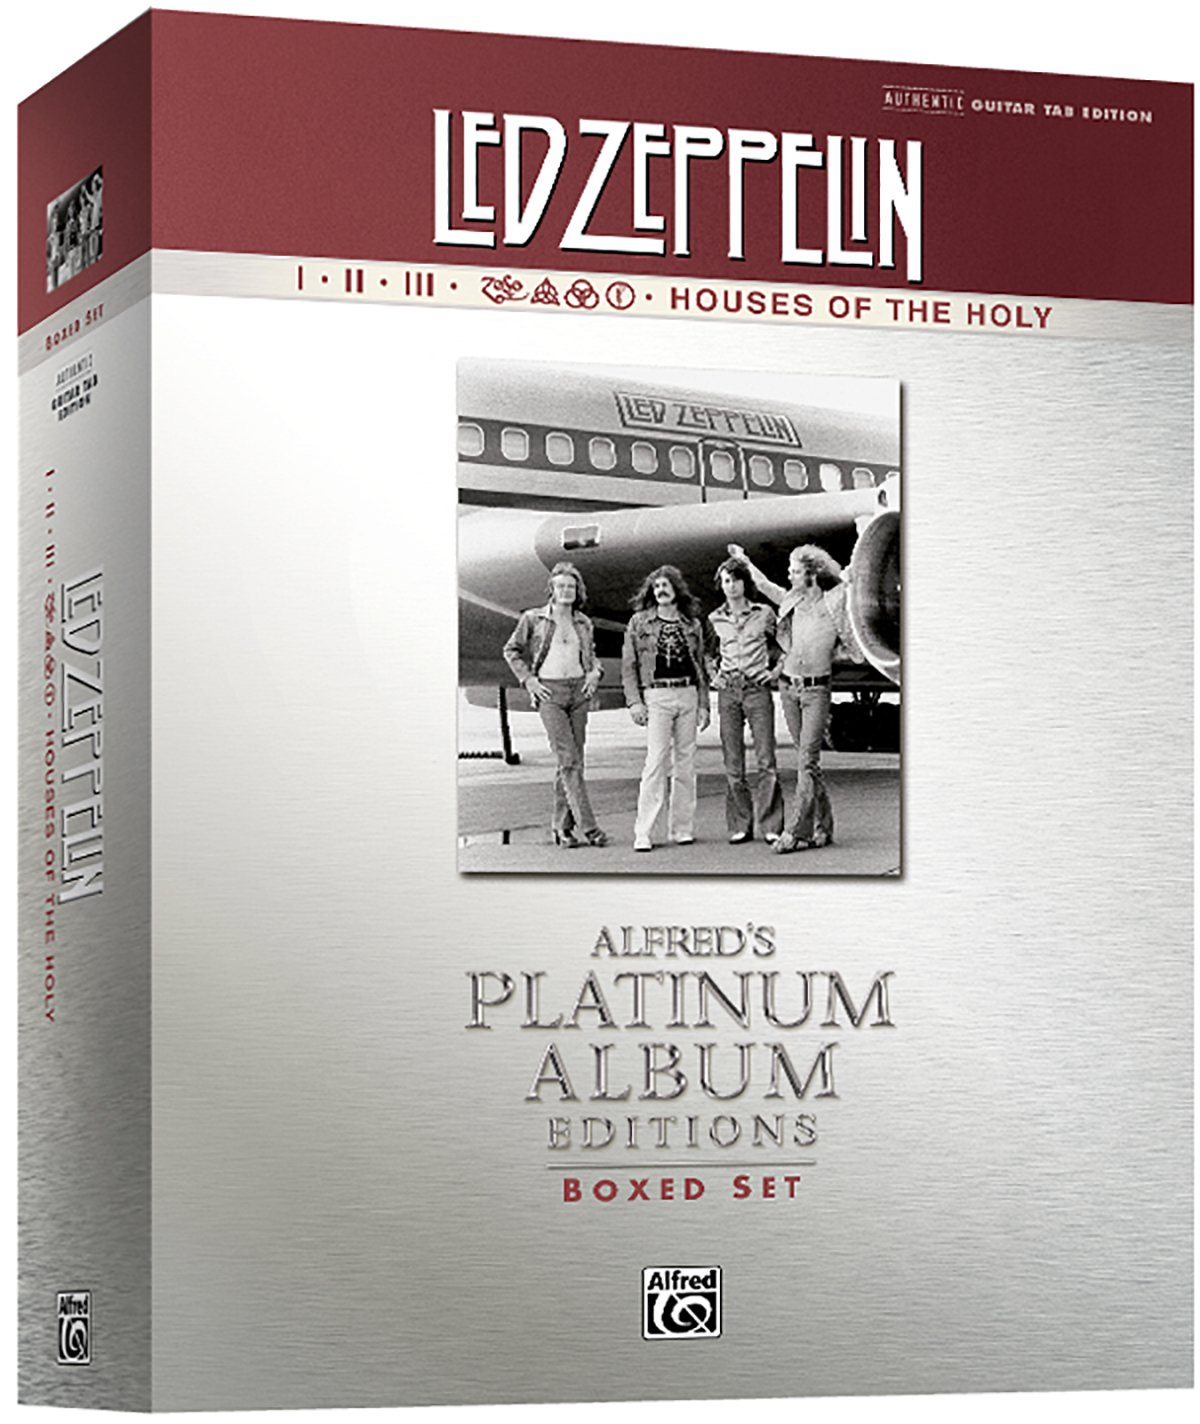 Amazon led zeppelin i houses of the holy boxed set platinum amazon led zeppelin i houses of the holy boxed set platinum guitar authentic guitar tab book boxed set alfreds platinum album editions hexwebz Choice Image